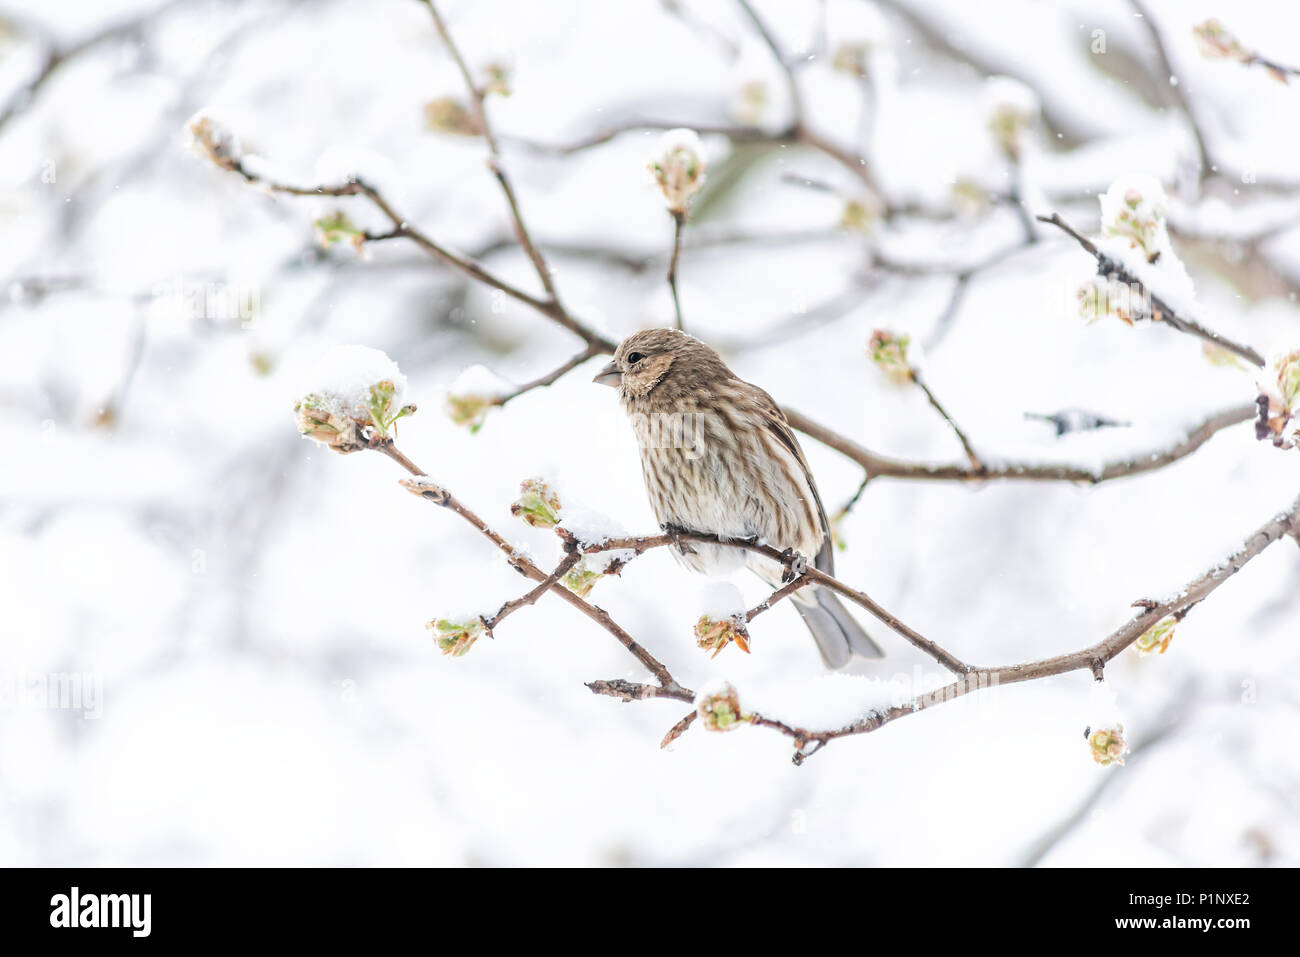 Female brown house finch, Haemorhous mexicanus, bird perched on tree branch during heavy winter in Virginia, snow flakes falling - Stock Image